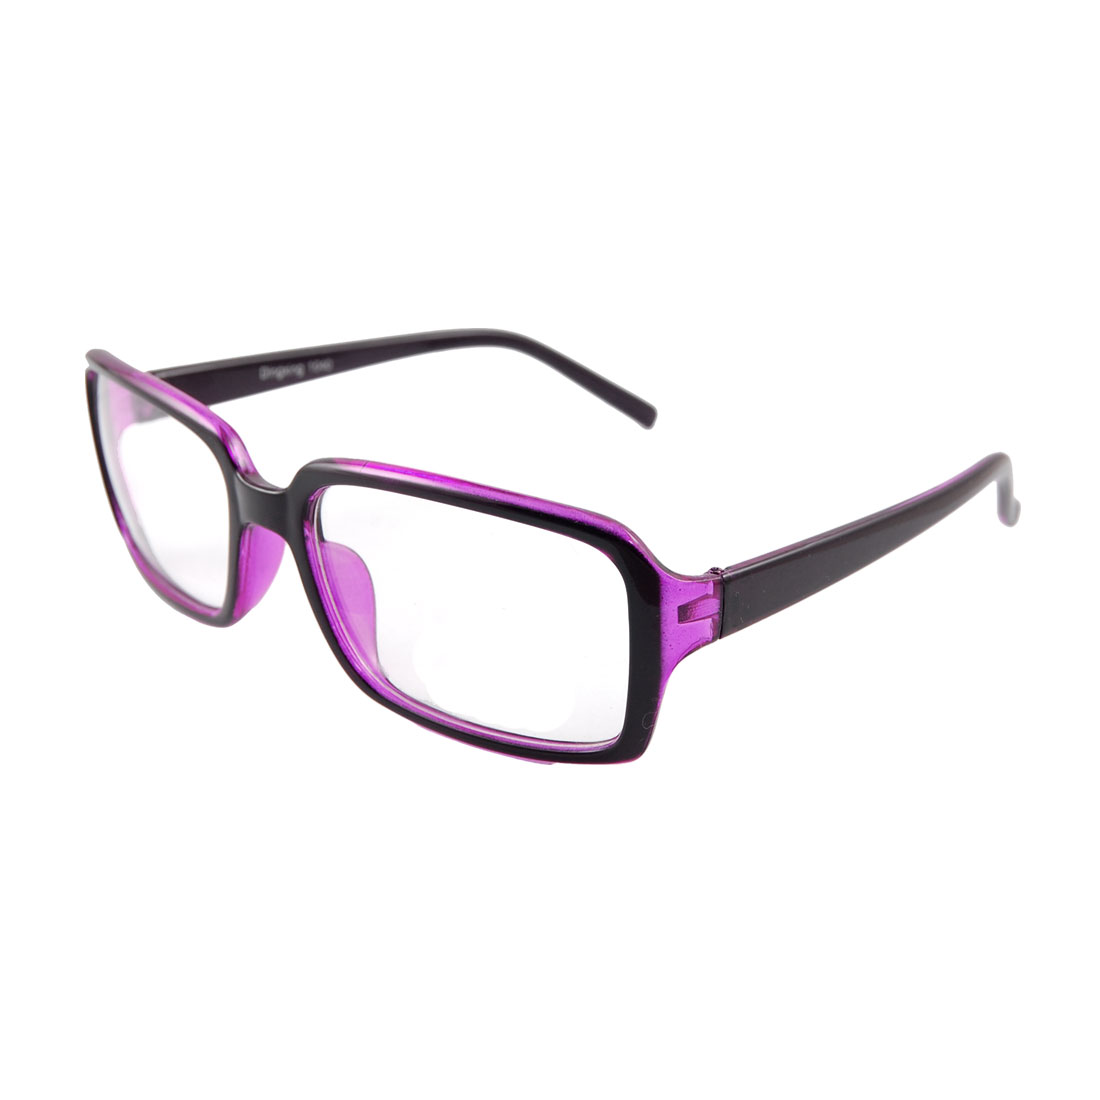 Unisex Dark Purple Plastic Arm Full Rim Plain Eyeglasses